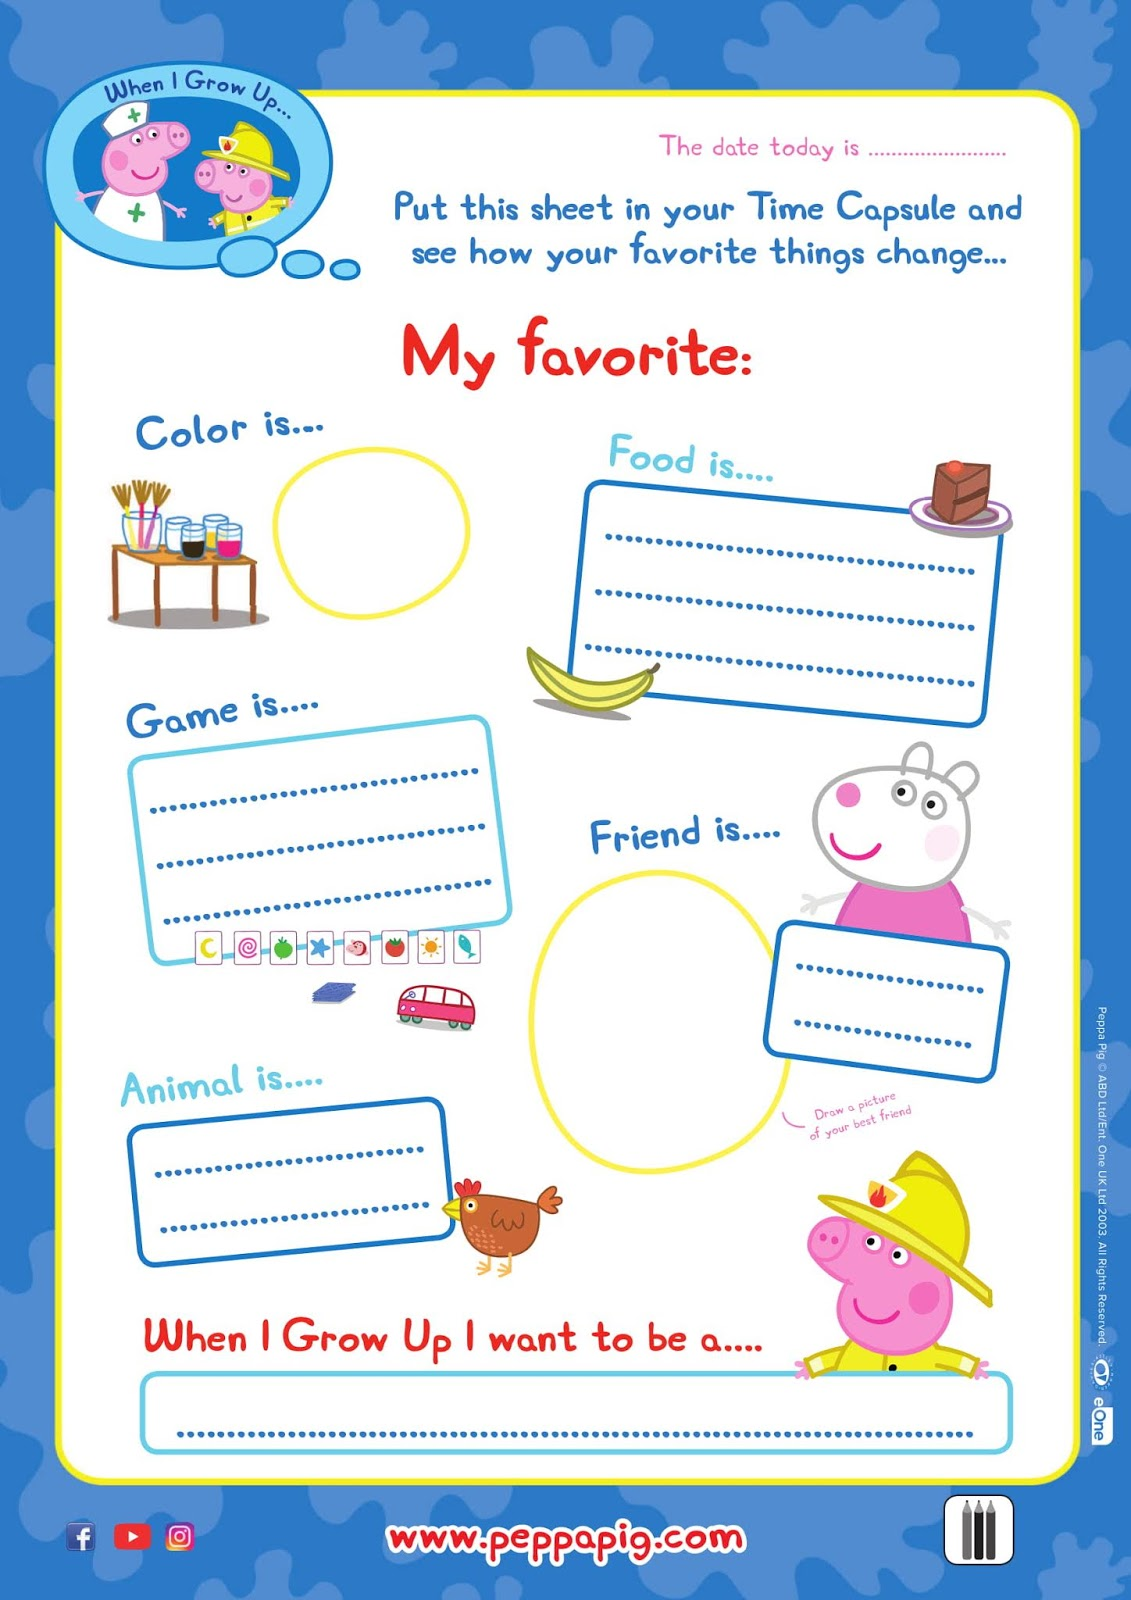 Peppa Pig Free Printable Activity